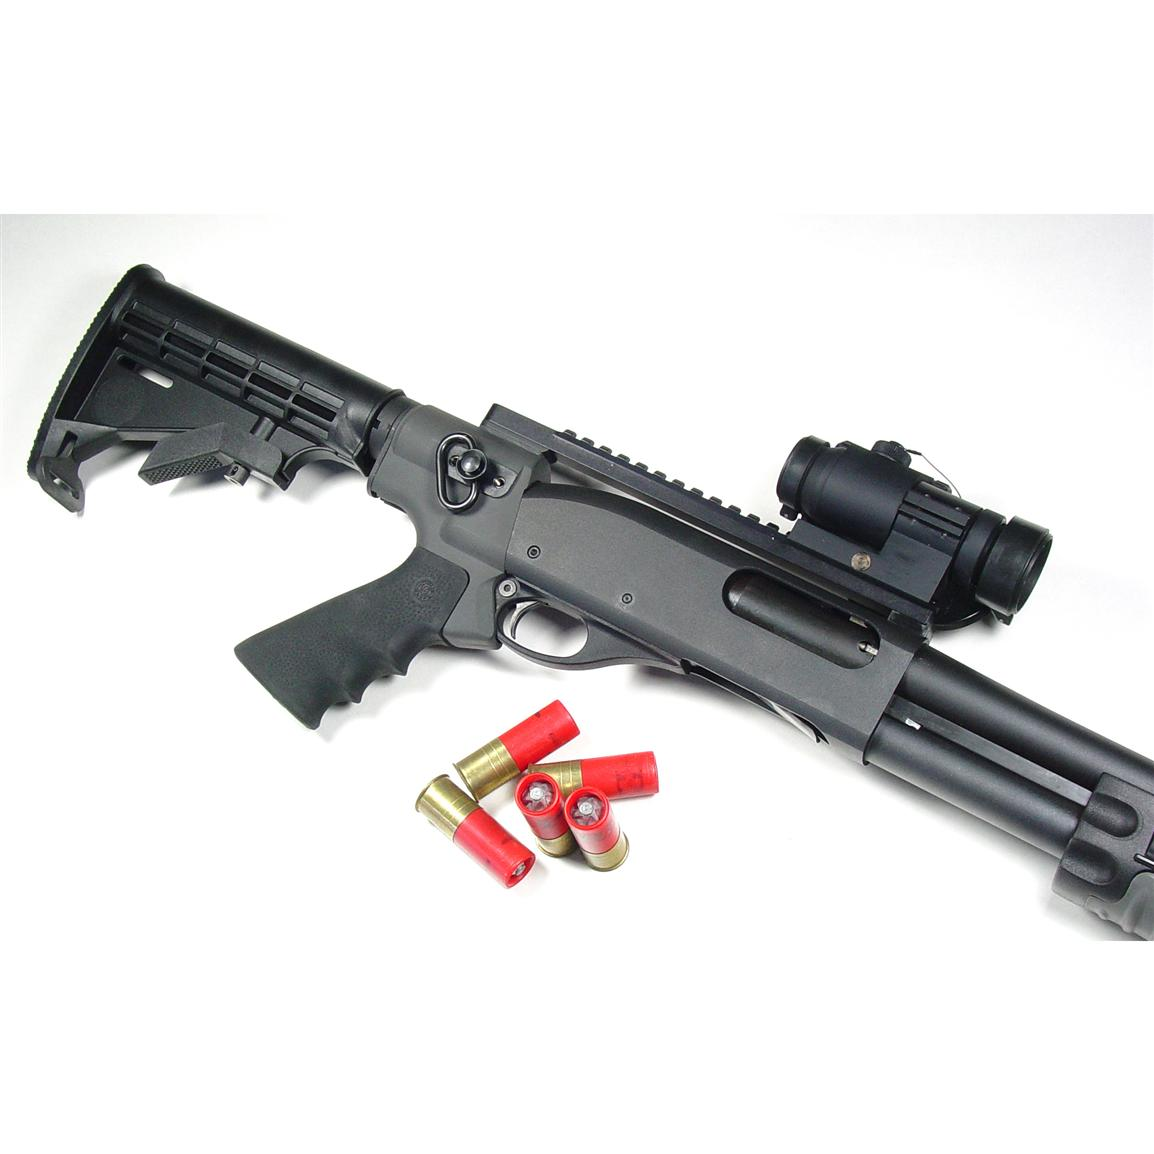 Everything necessary to retrofit your Mossberg 500/590, Remington 870, or Winchester 1200/1300 12-ga.